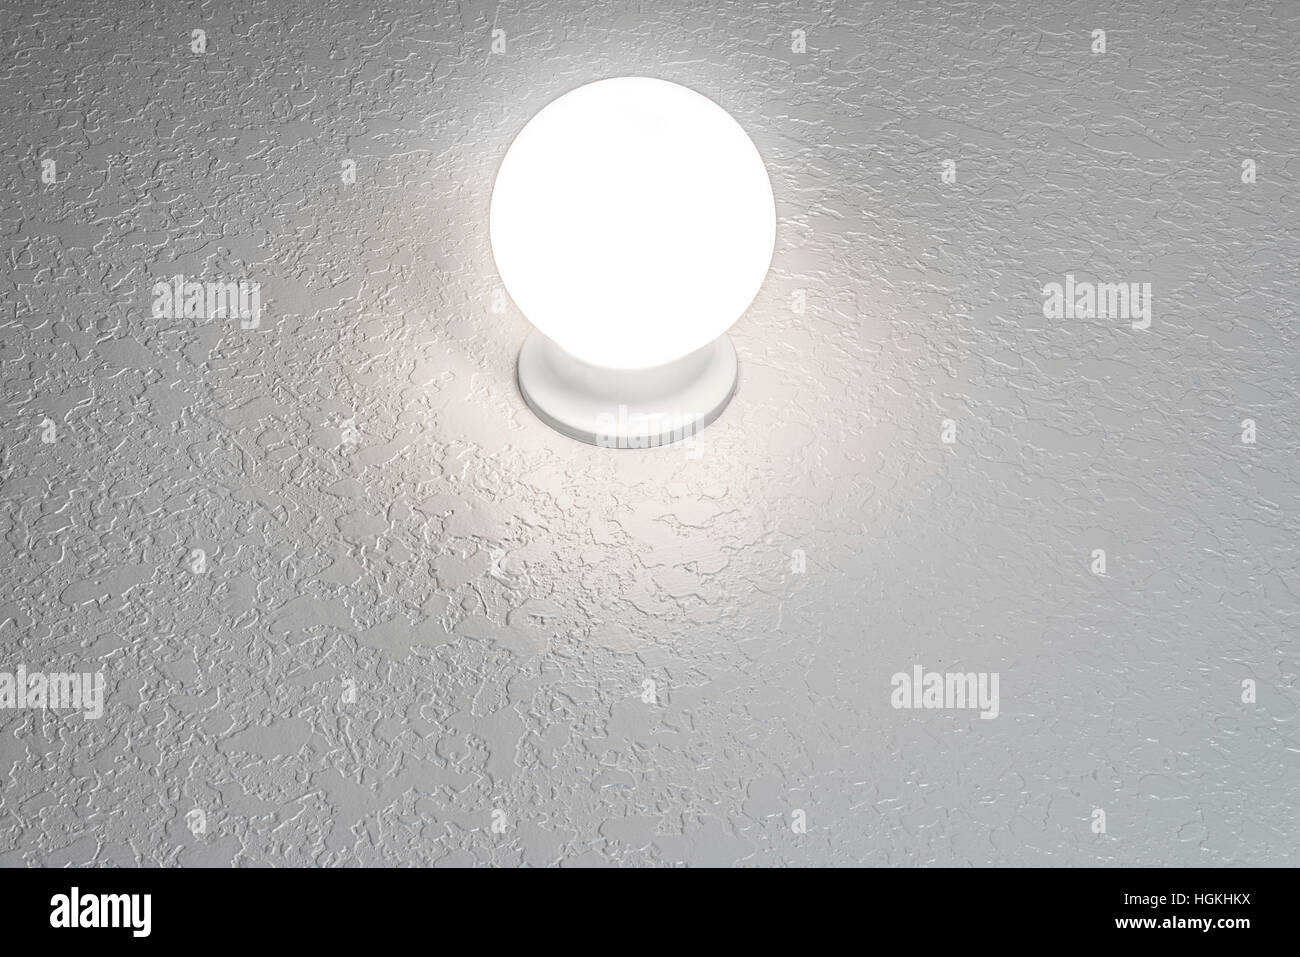 Glowing crystal ball on textured background with copy space horizontal. - Stock Image